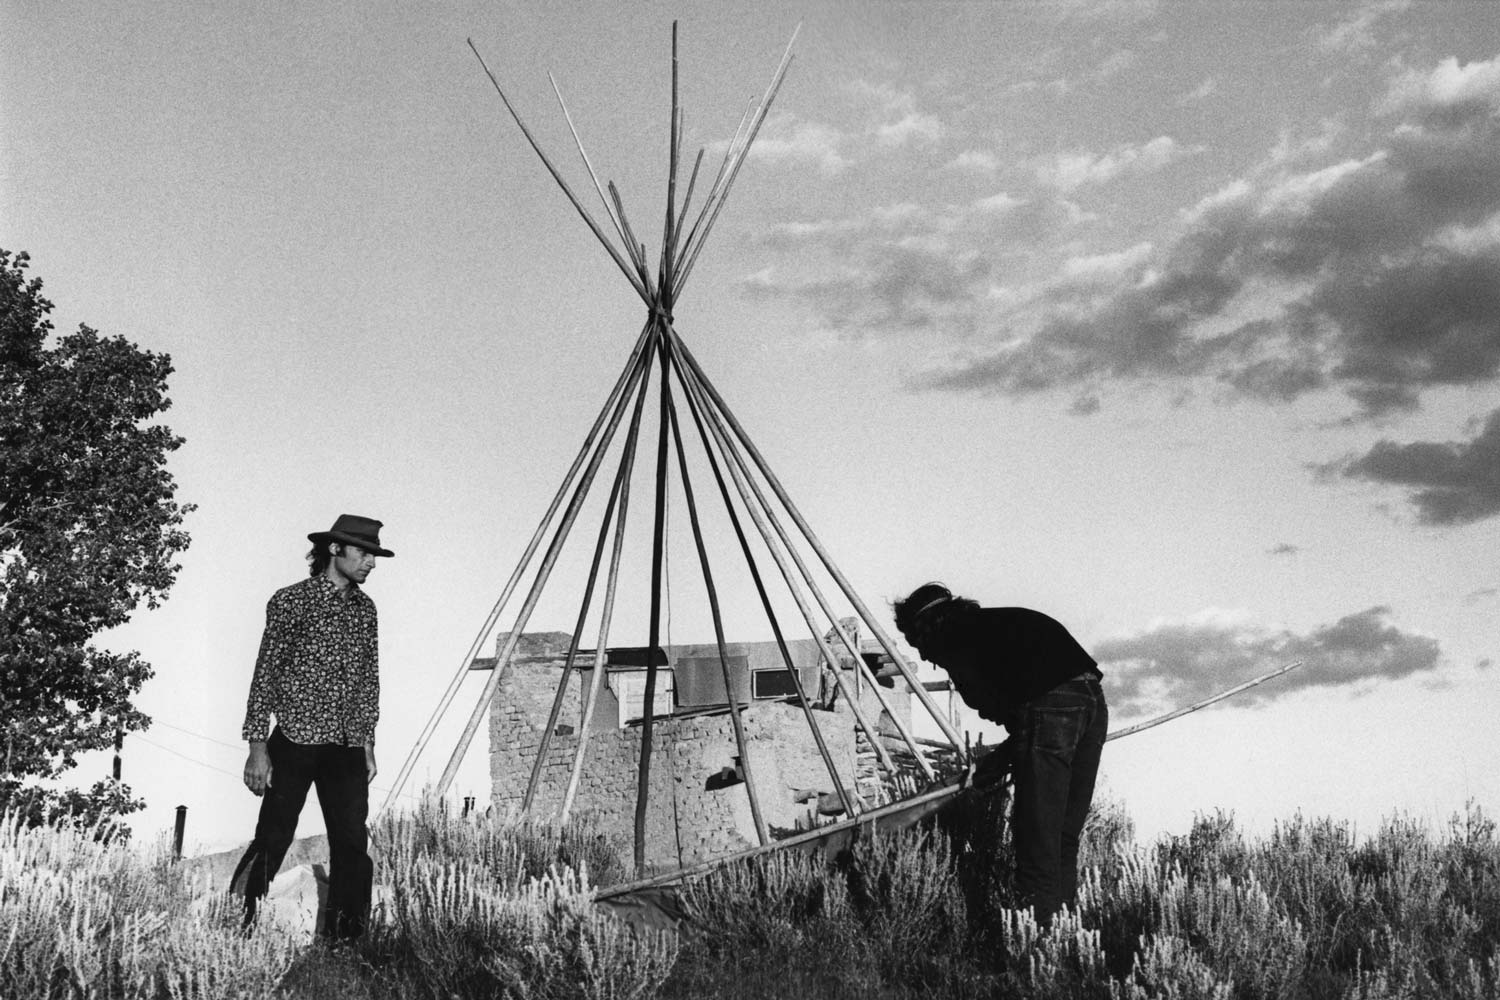 Reno Kleen Myerson And Steve Samuels Building A Tipi In Northern New Mexico 1967